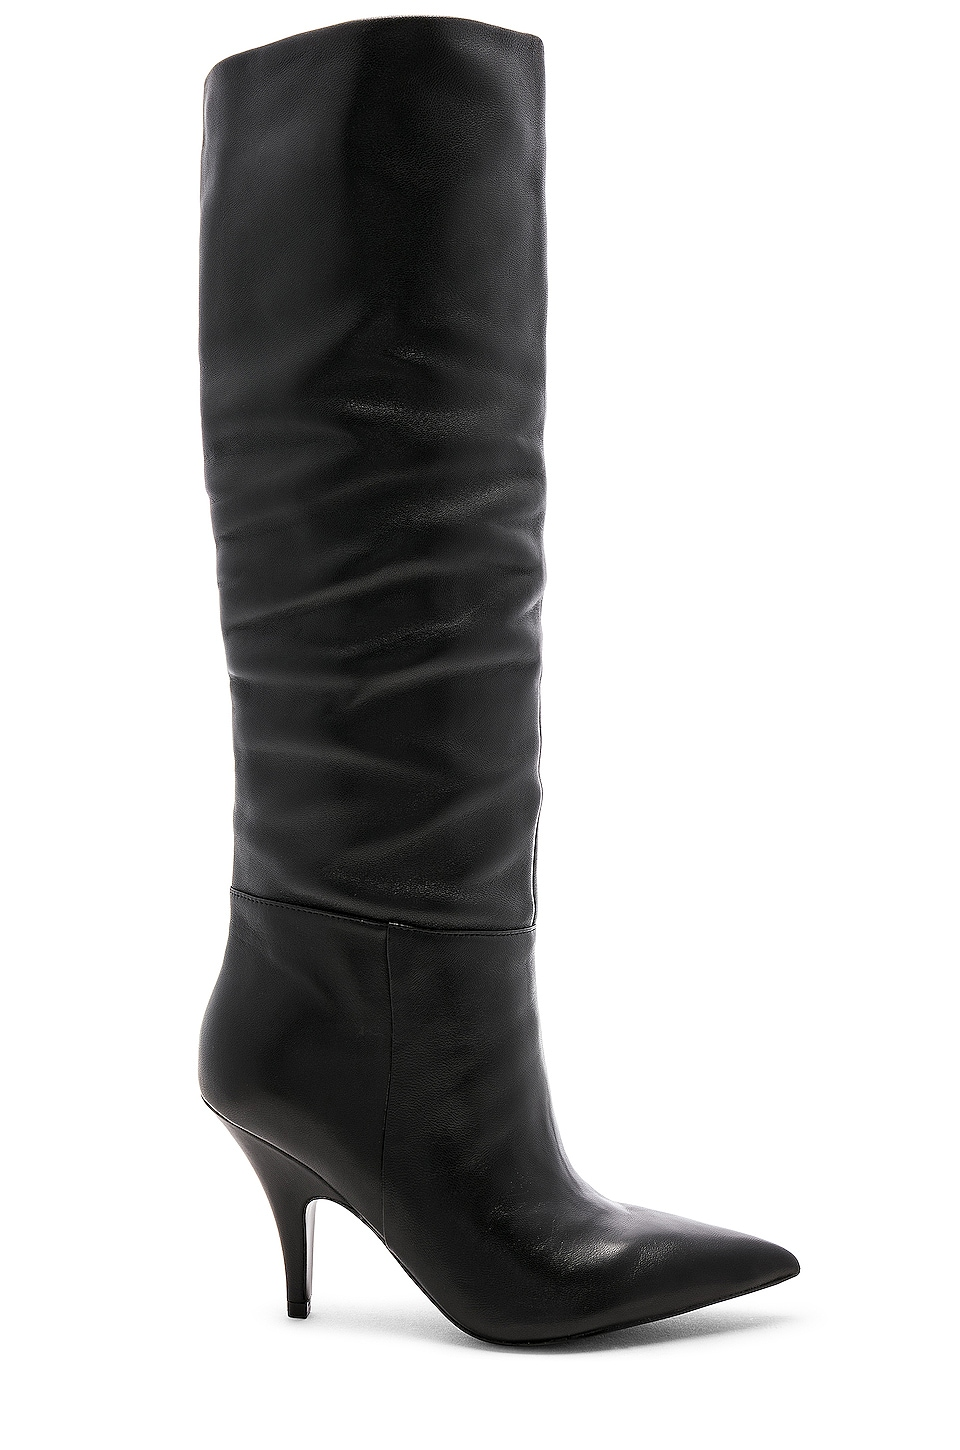 KENDALL + KYLIE Cala Boot in Black